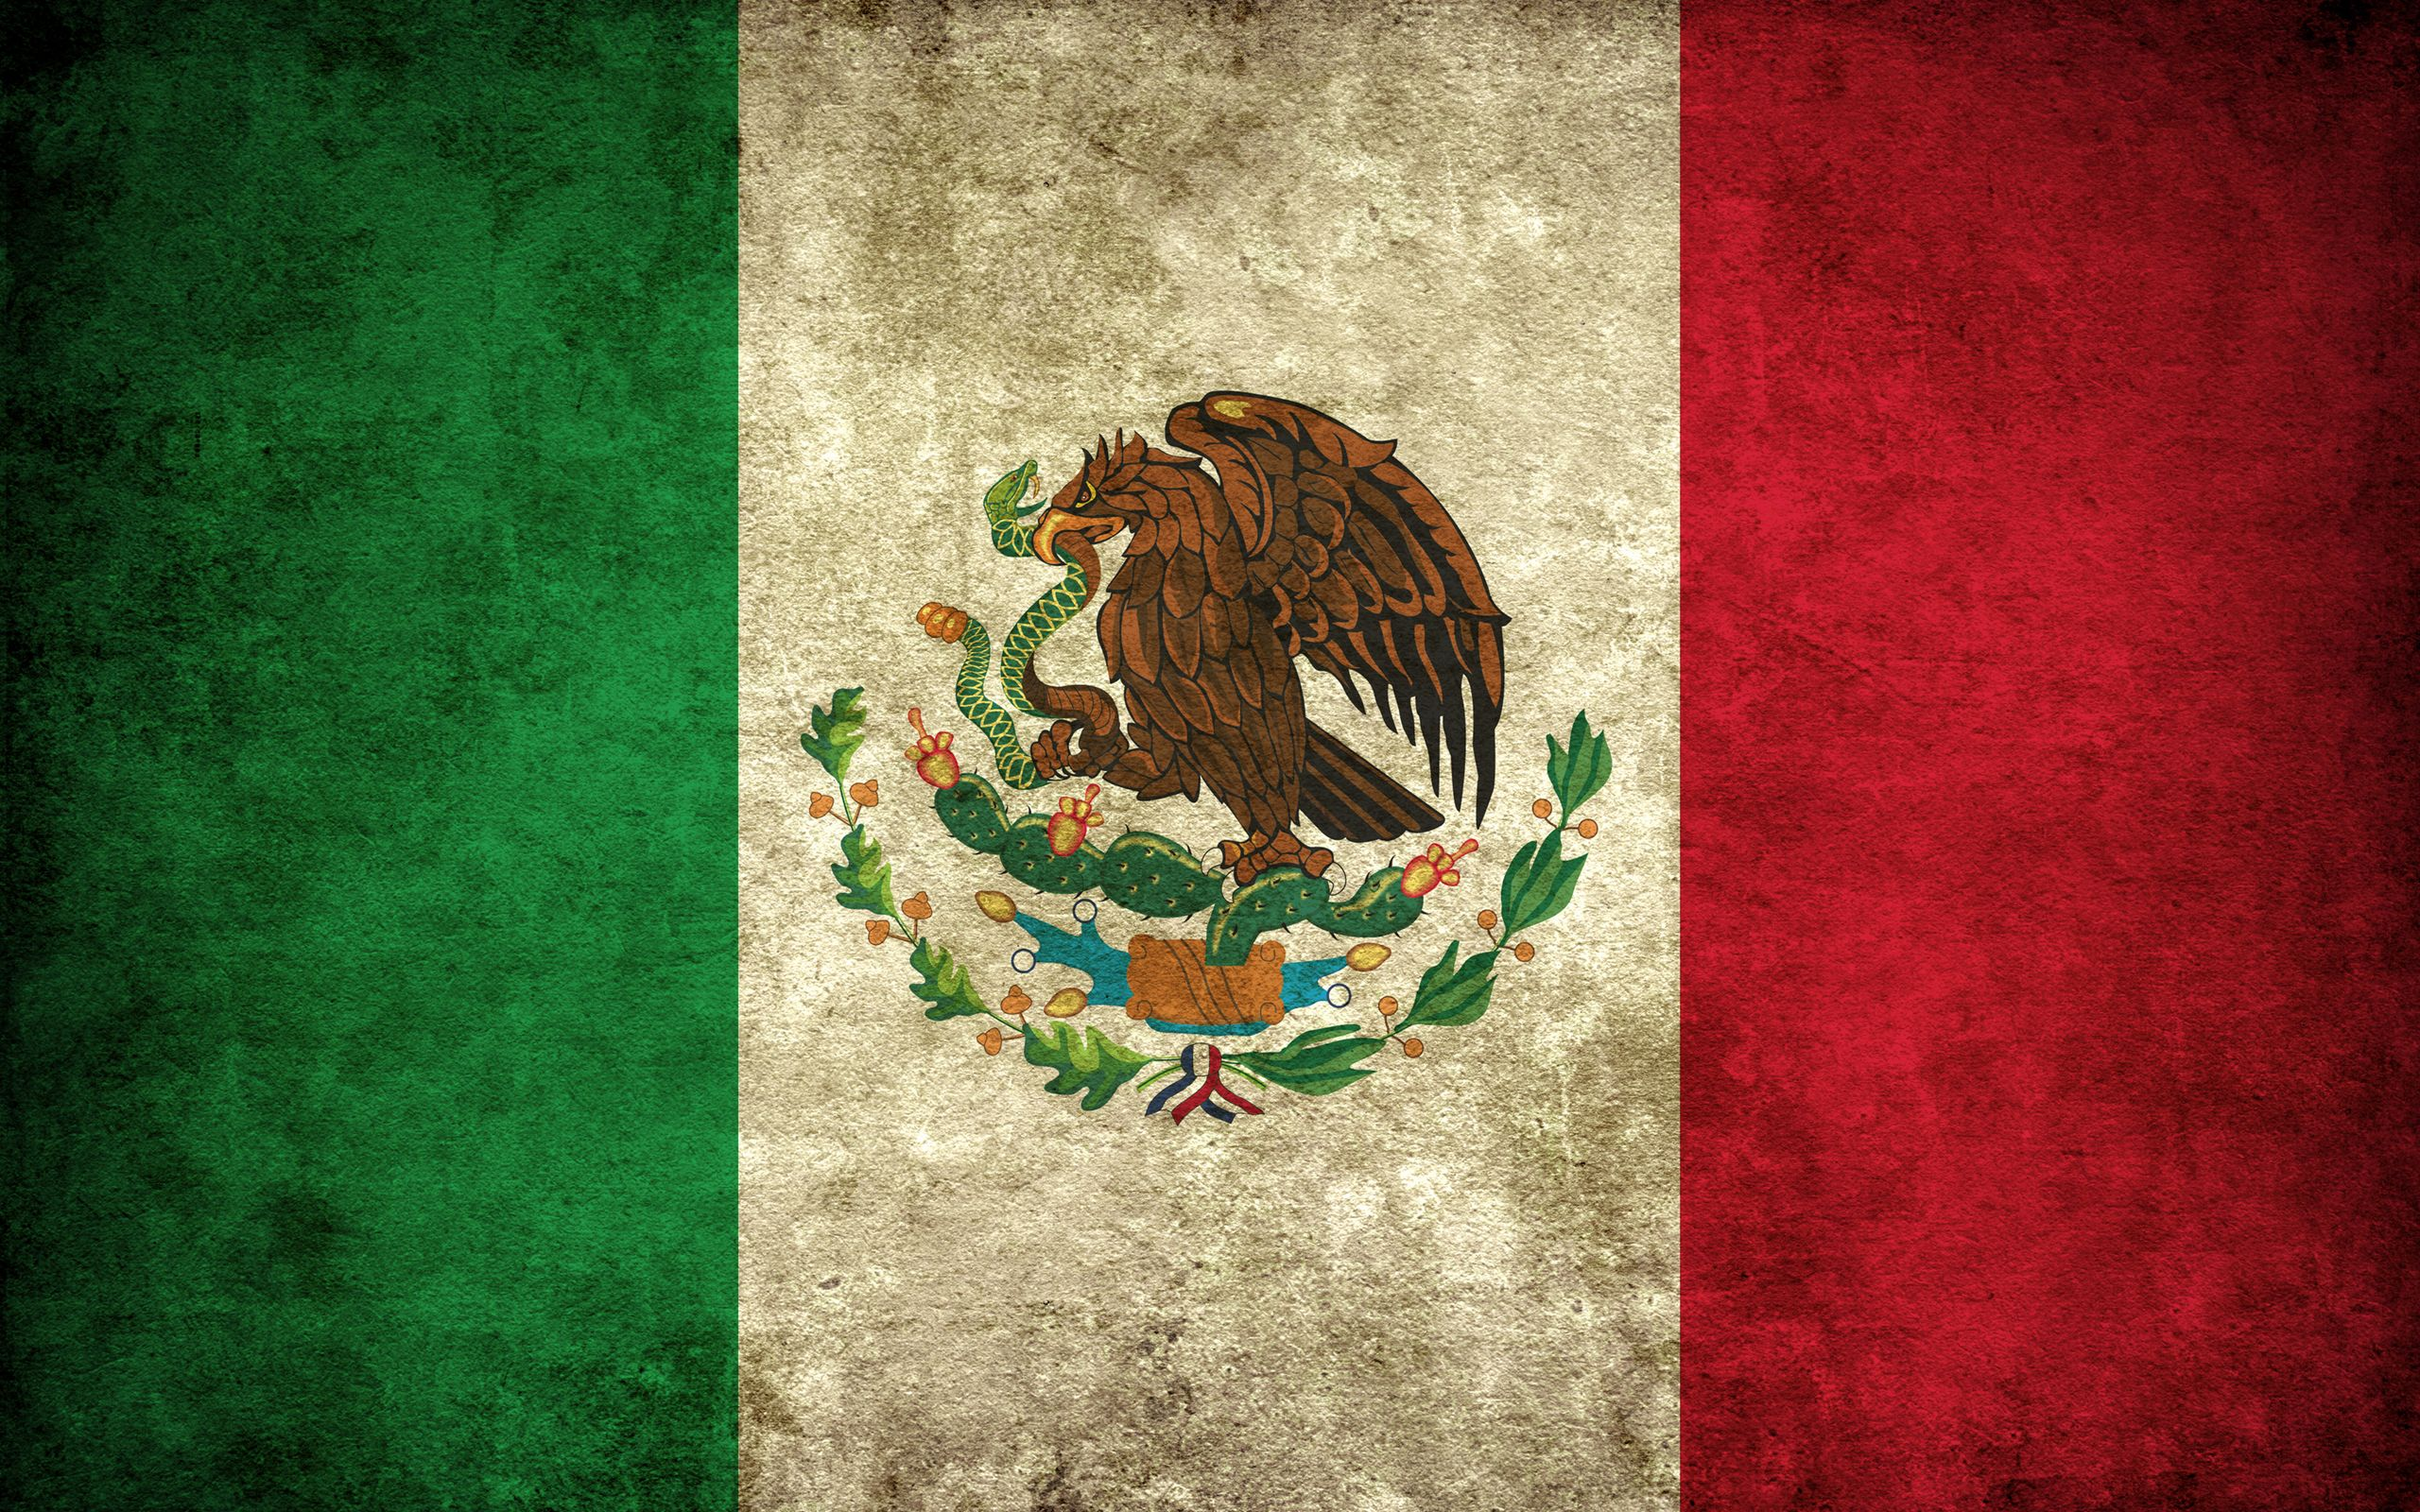 Mexico Flag Wallpapers - Top Free Mexico Flag Backgrounds - WallpaperAccess